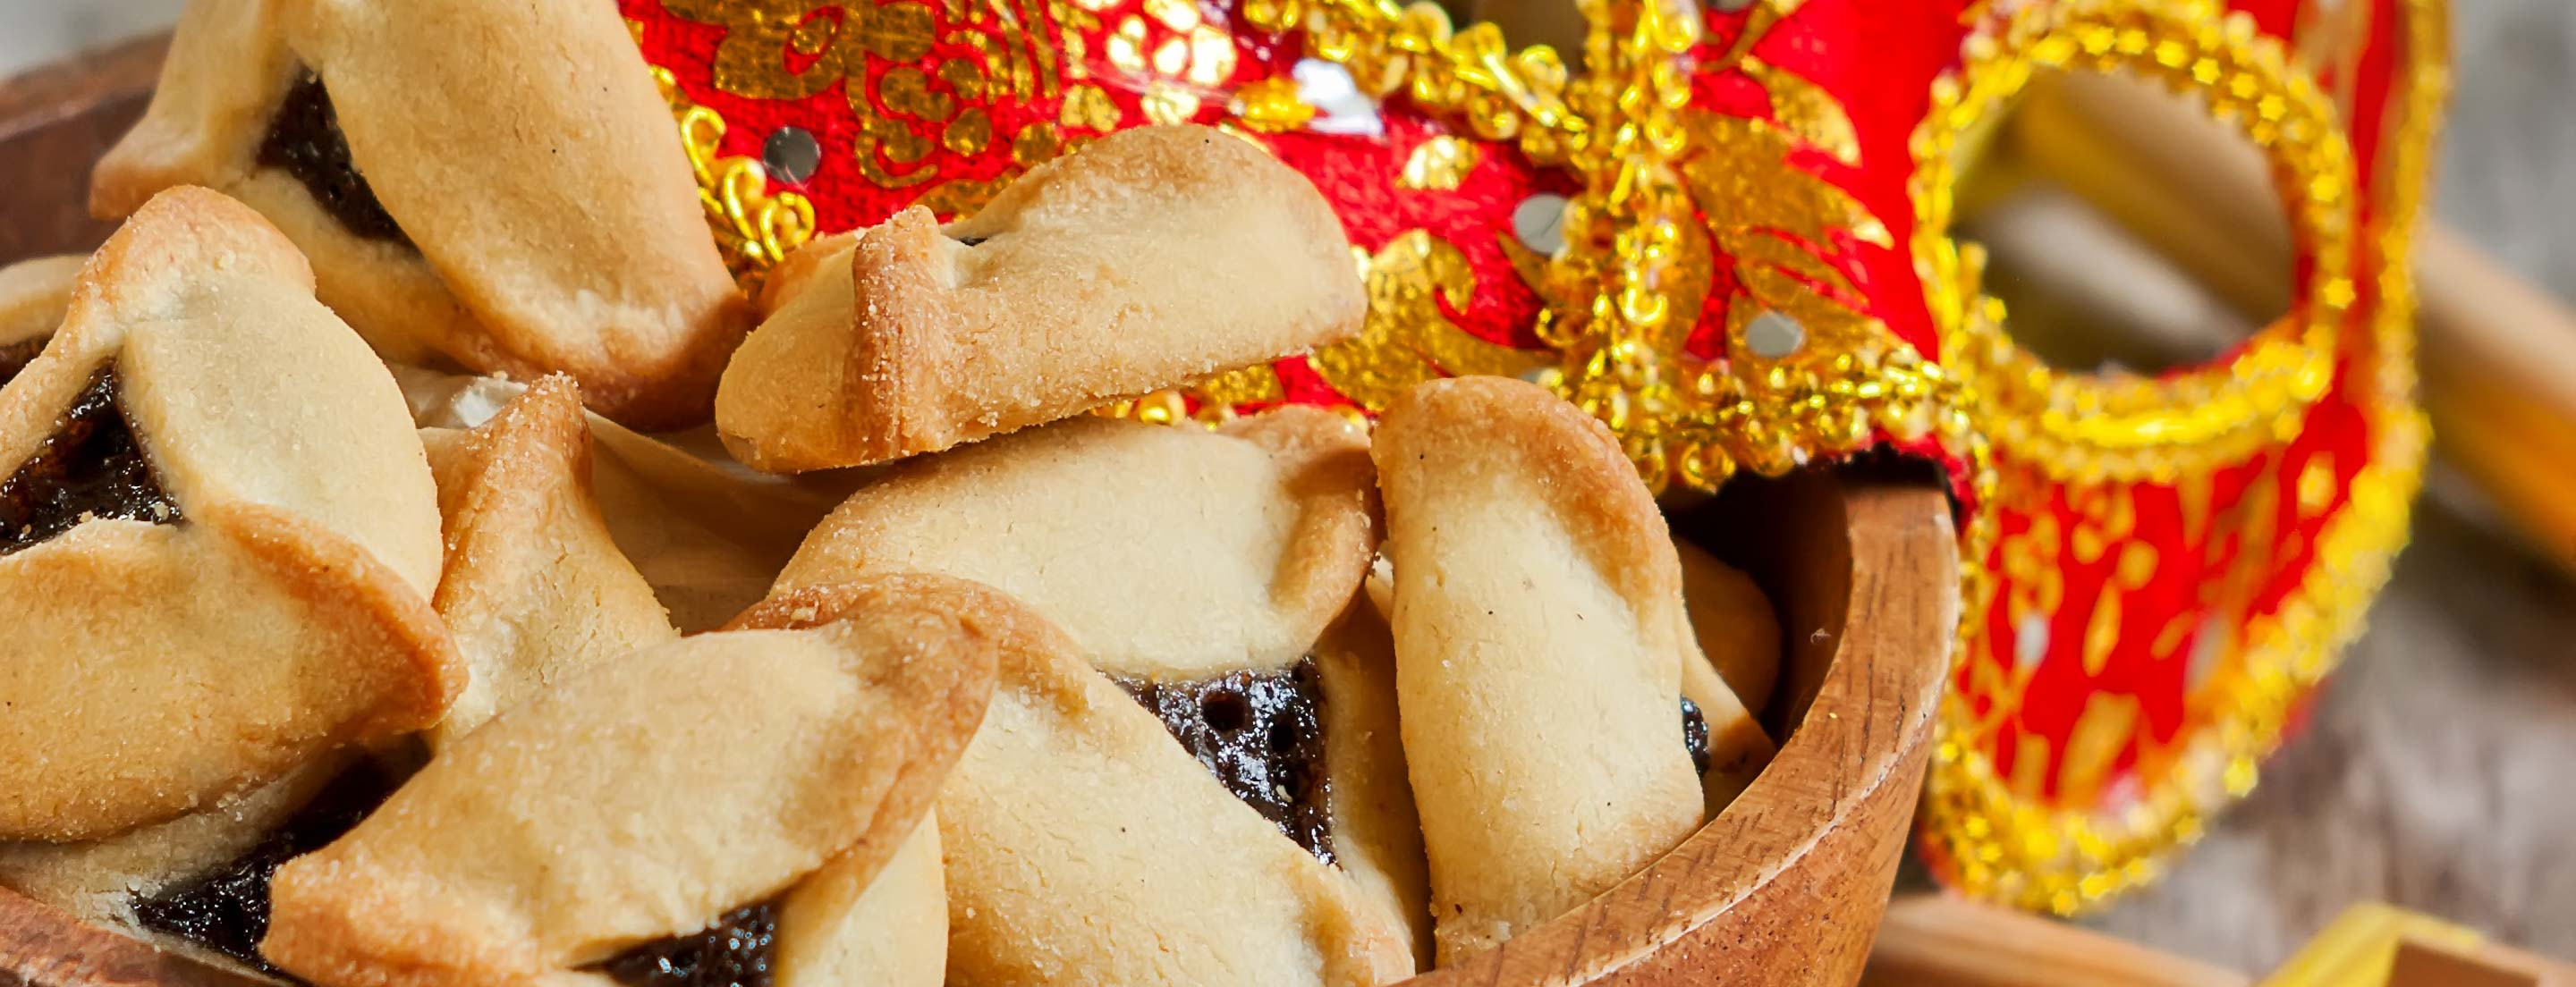 Learn about the Jewish holiday of Purim from the Book of Esther Includes a recipe for hamentaschen traditional holiday cookies